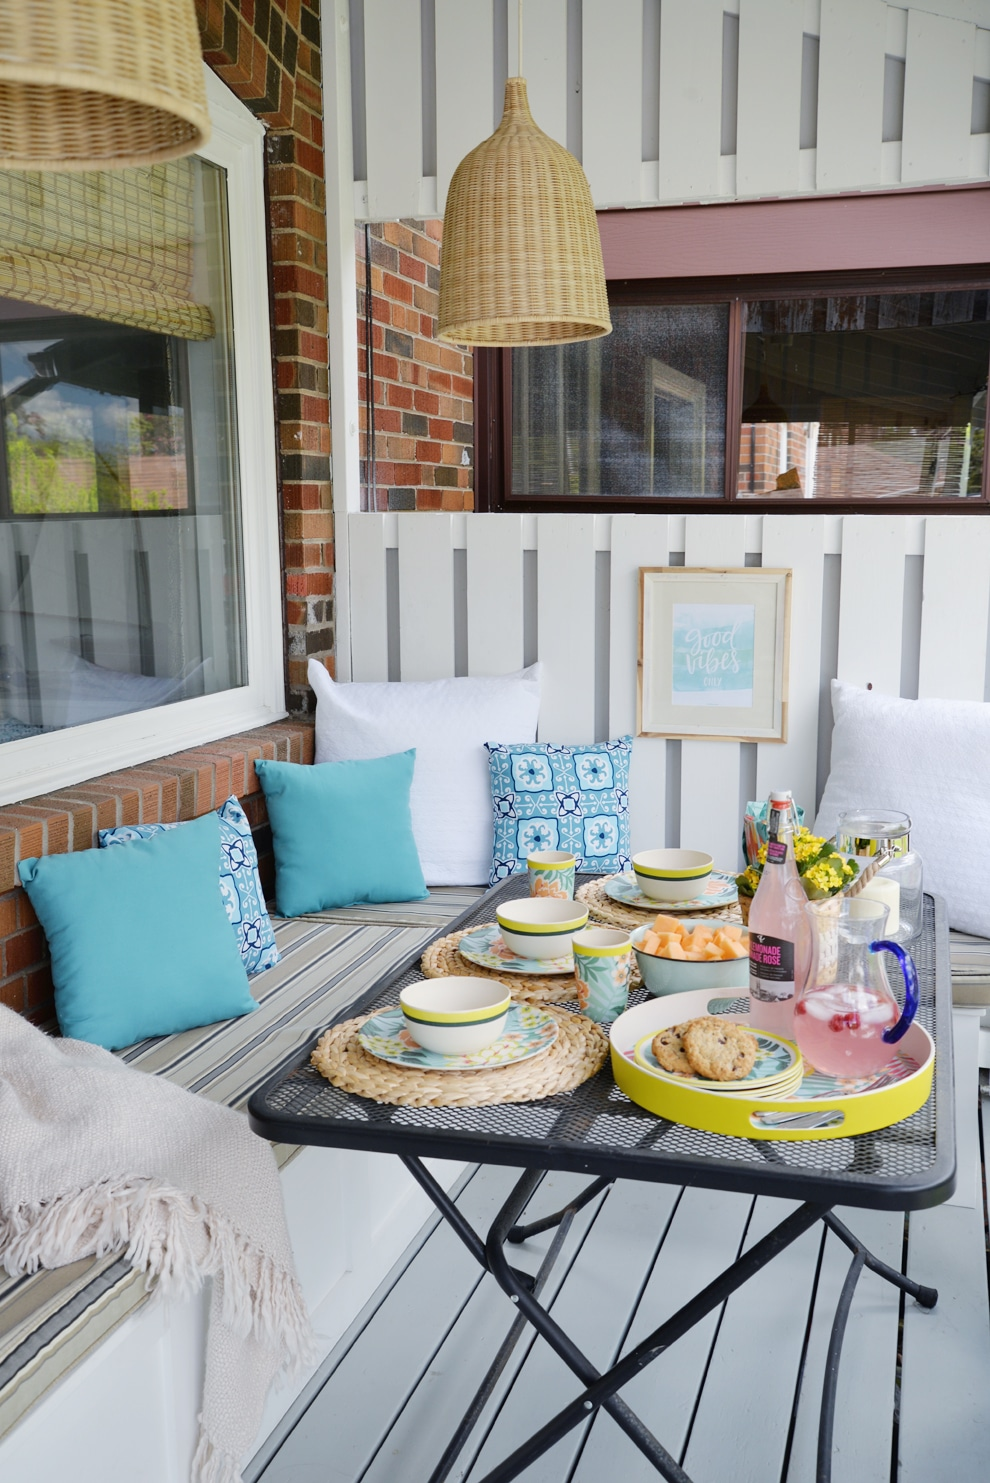 12 Stylish Porch, Deck and Patio Decor Ideas - Setting for ... on Patio With Deck Ideas id=21454